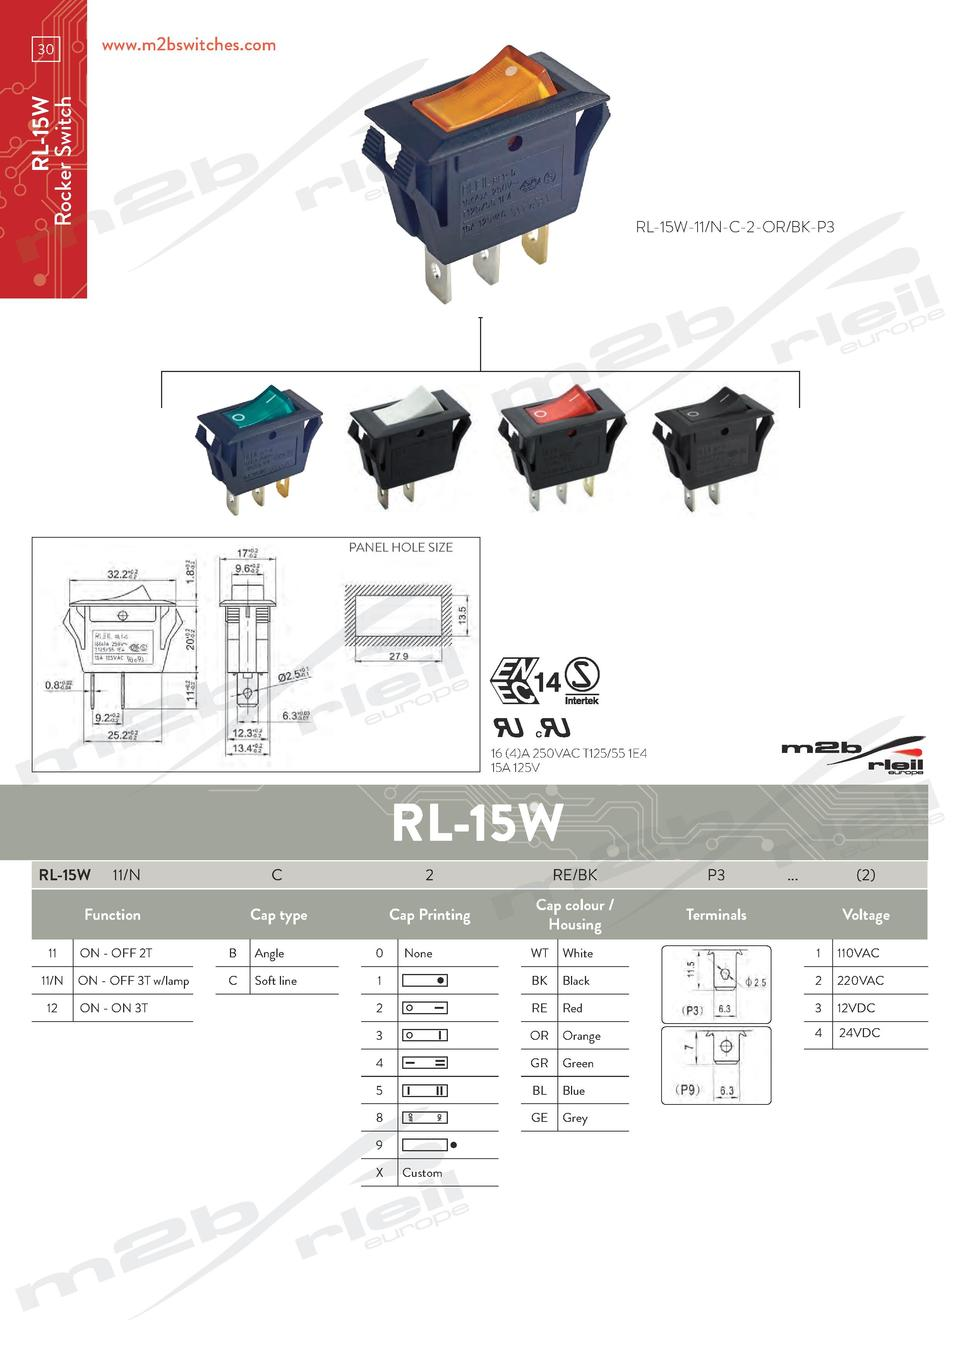 www.m2bswitches.com  RL-15W Rocker Switch  30  RL-15W-11 N-C-2-OR BK-P3  PANEL HOLE SIZE  16  4 A 250VAC T125 55 1E4 15A 1...